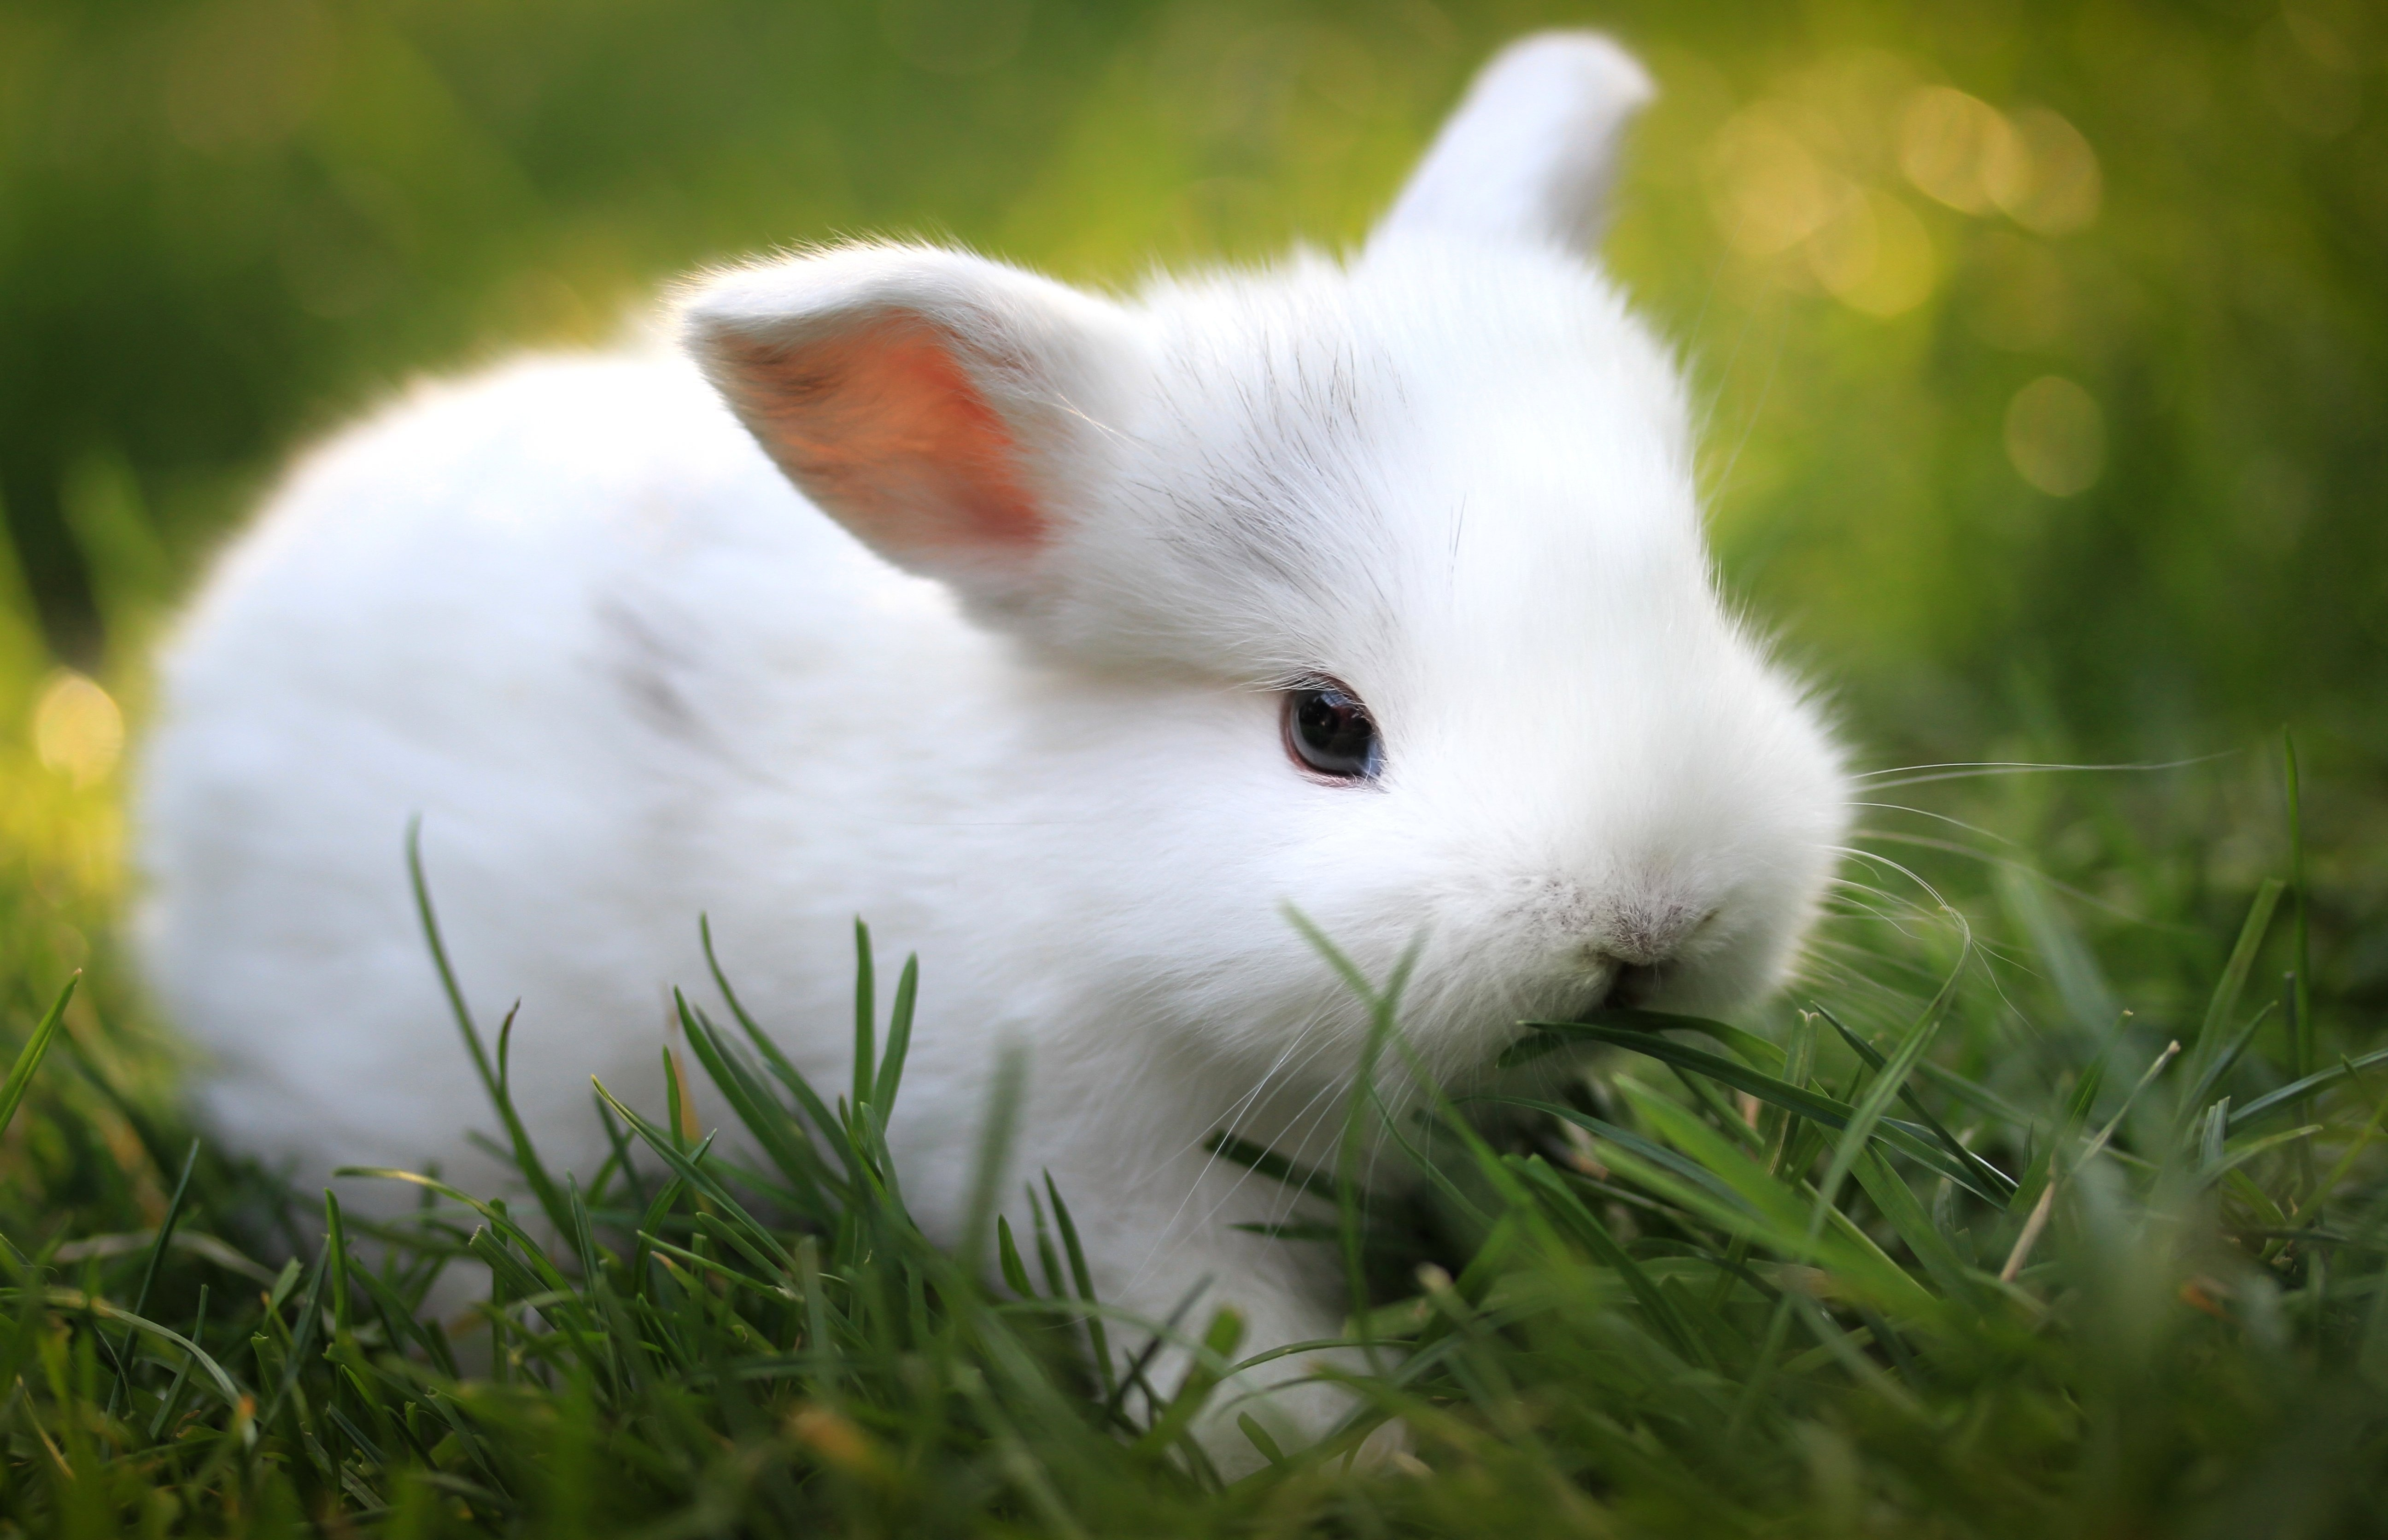 70492 Screensavers and Wallpapers Nice for phone. Download Animals, Food, Grass, Nice, Sweetheart, Rabbit pictures for free